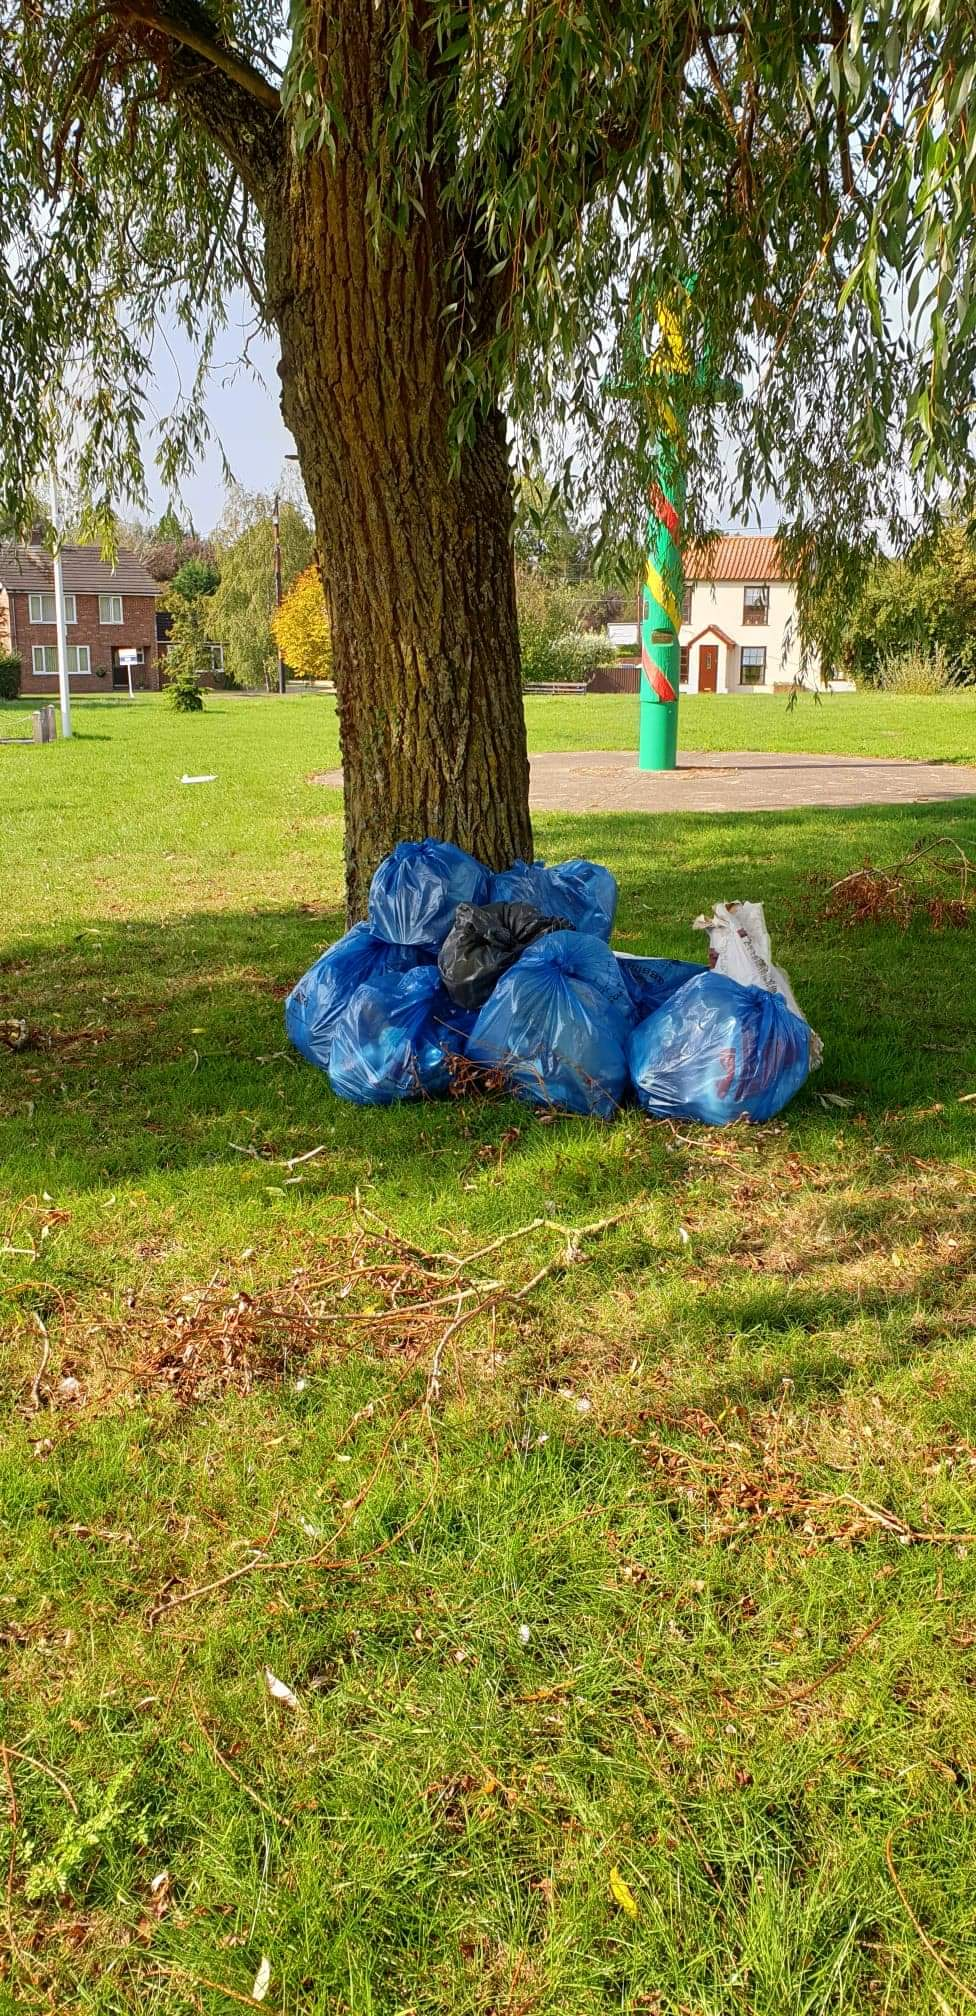 collected rubbish bags piled under a tree